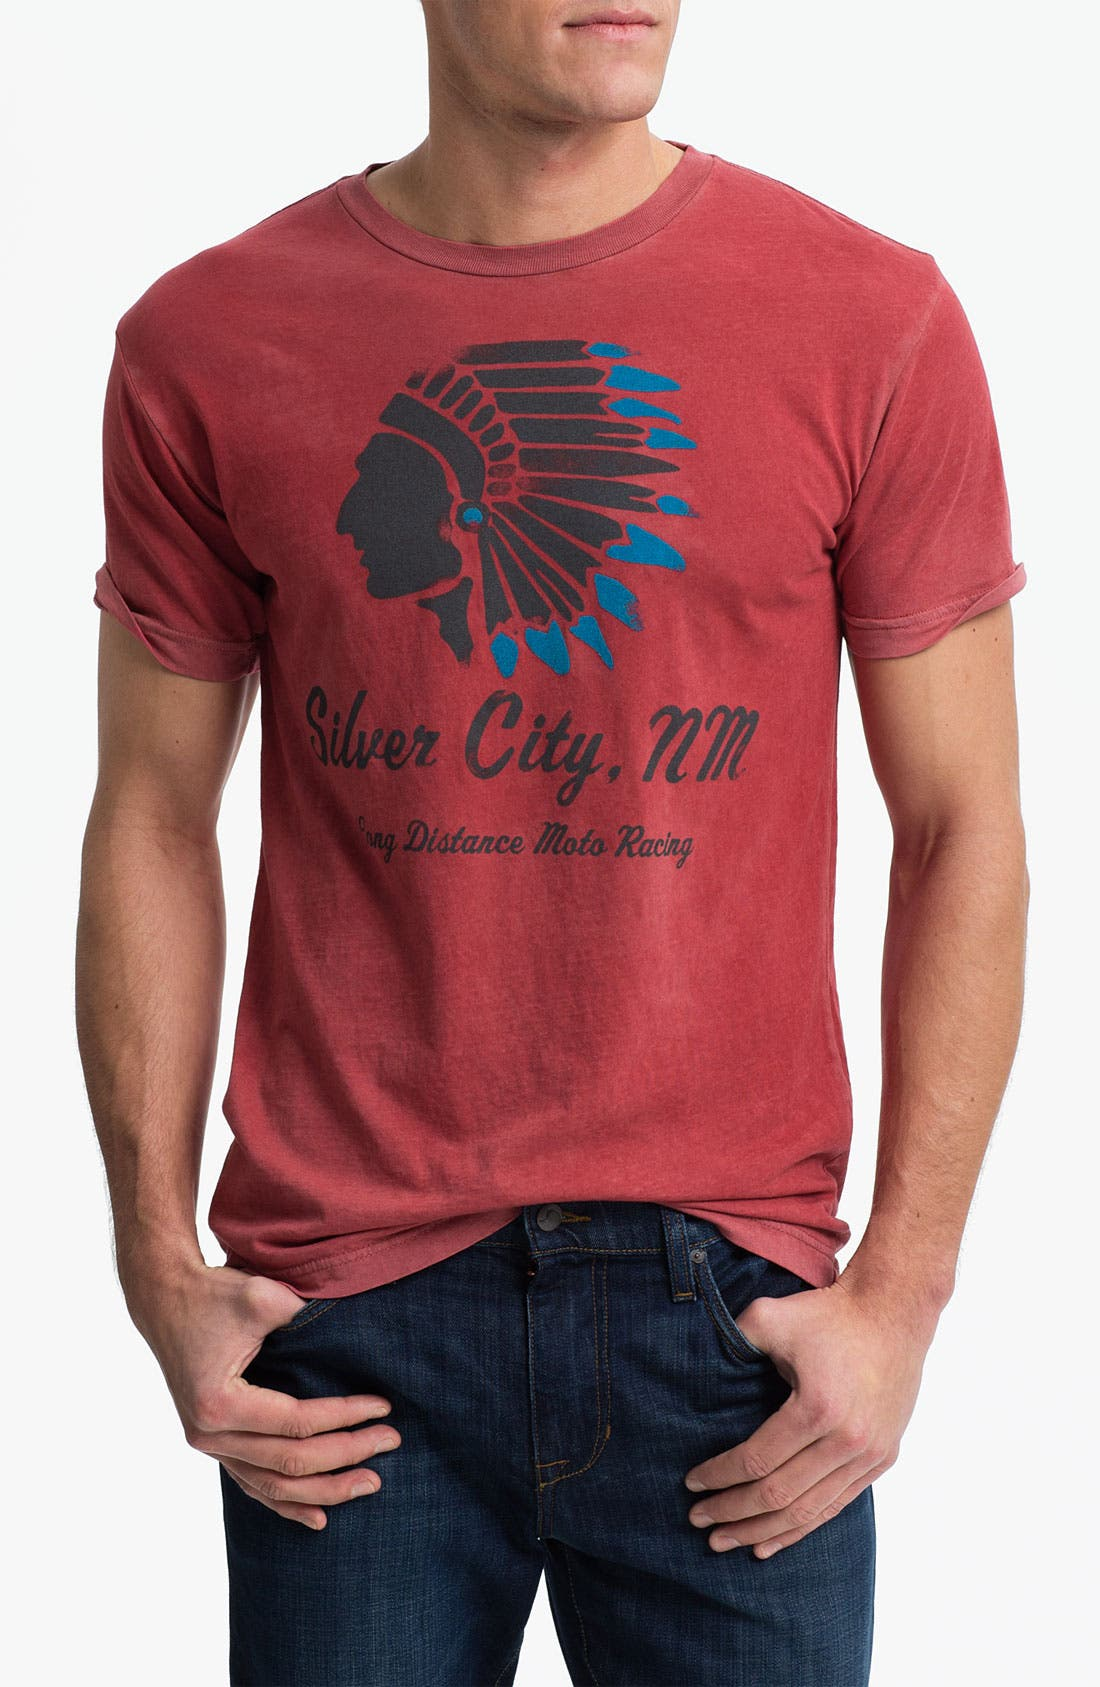 'Silver City, NM' Graphic T-Shirt,                             Main thumbnail 2, color,